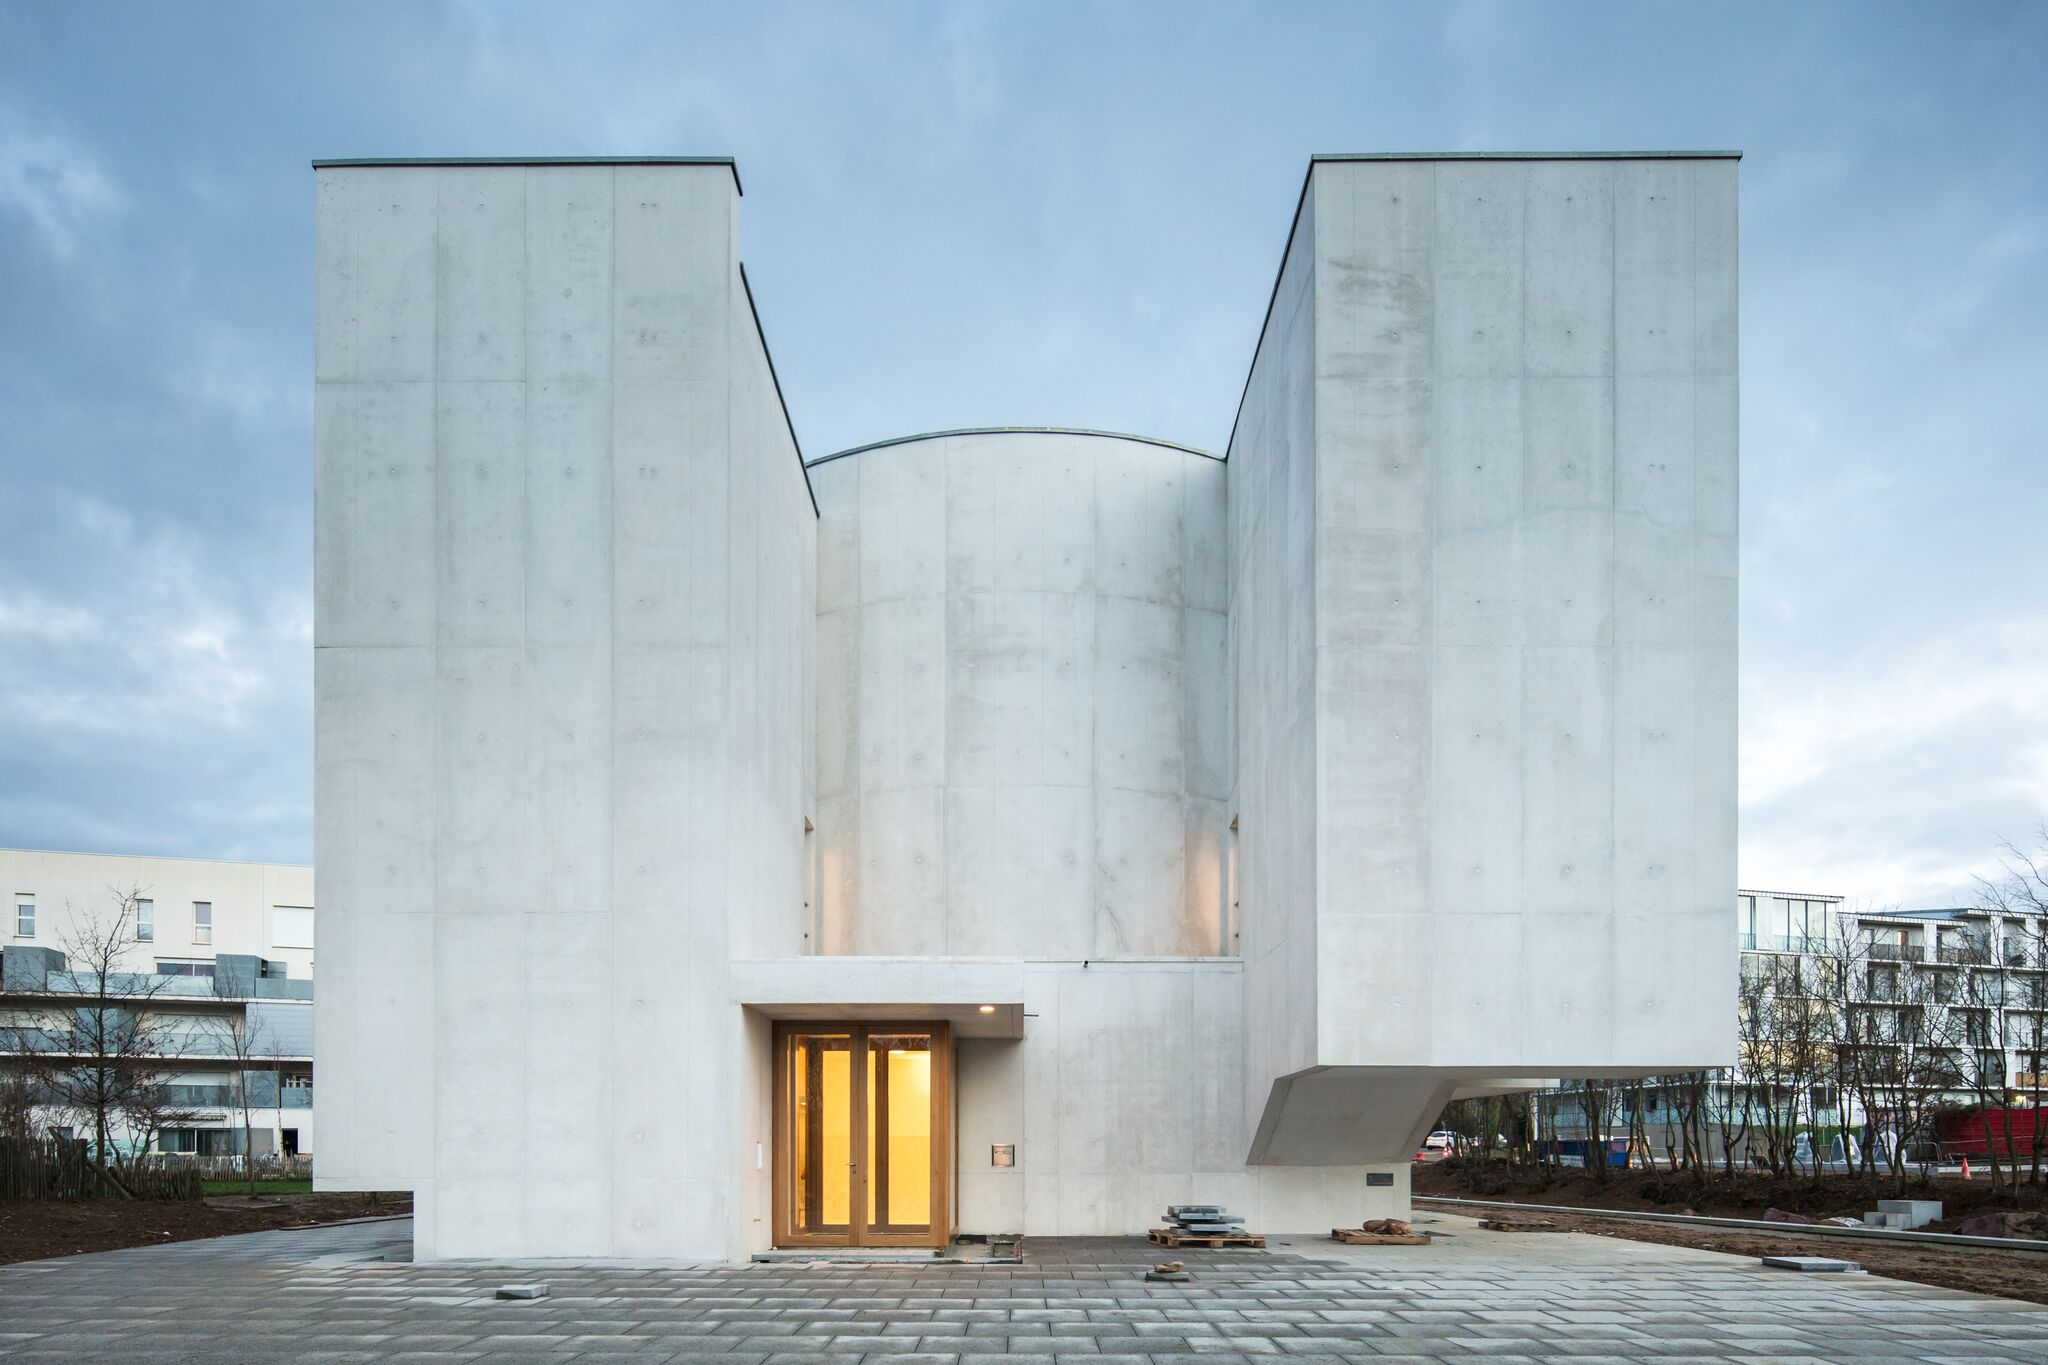 2_Alvaro Siza Vieira_New Church of Saint-Jacques de la Lande_Inspirationist